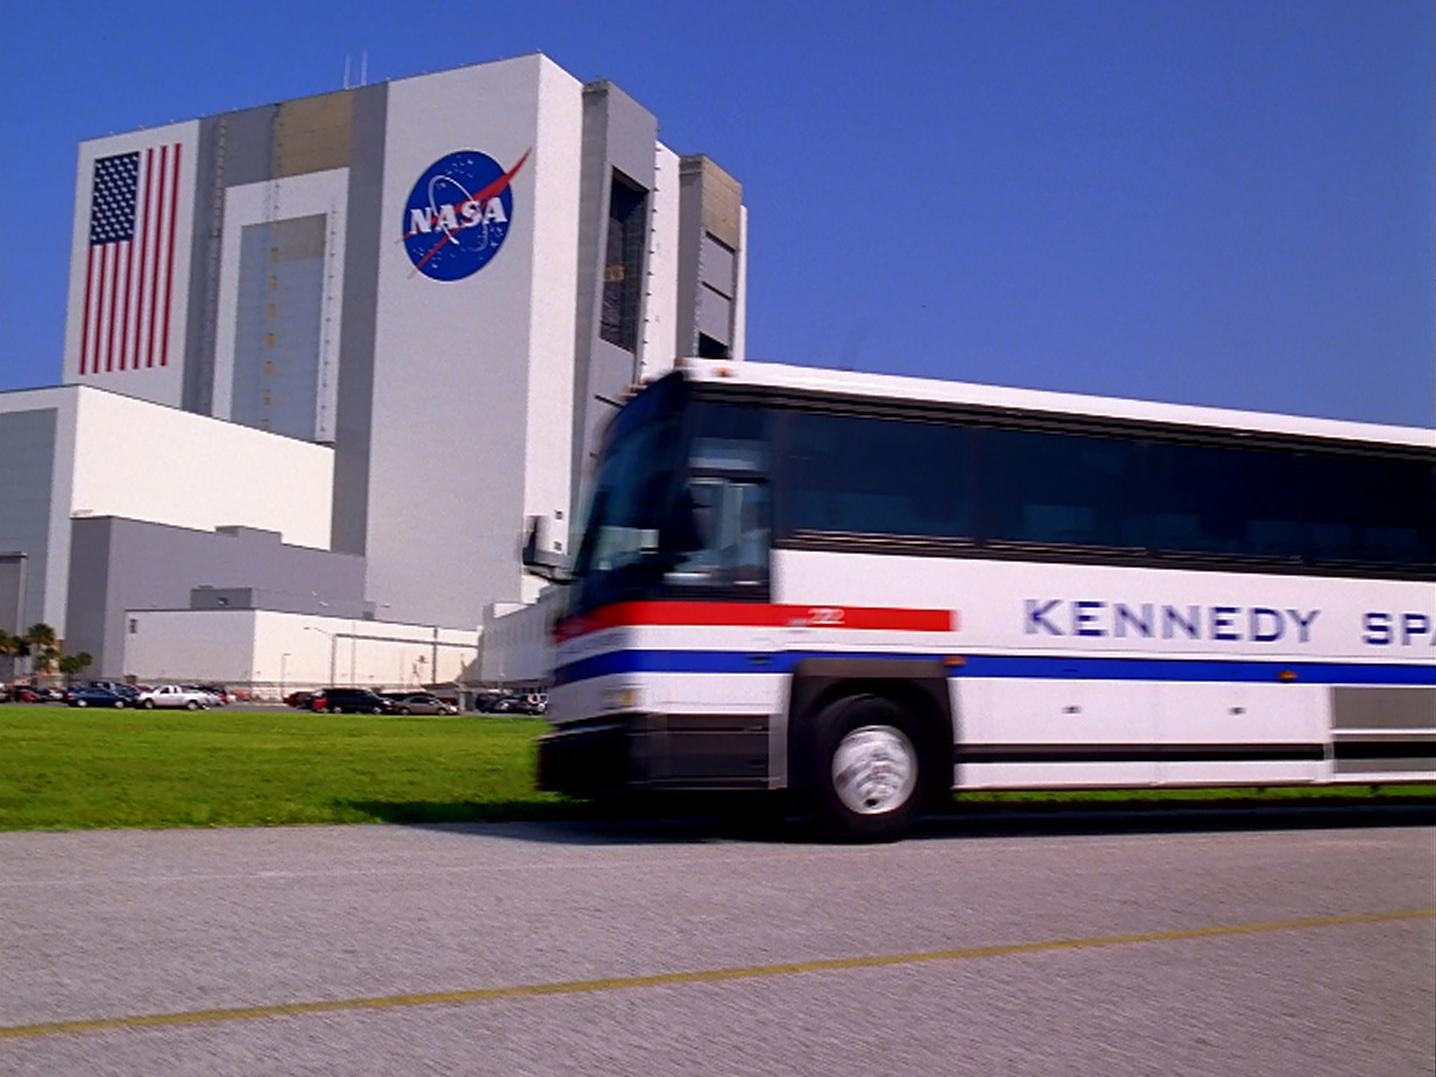 Day Kennedy Space Center Tour From Orlando - Cape canaveral tours